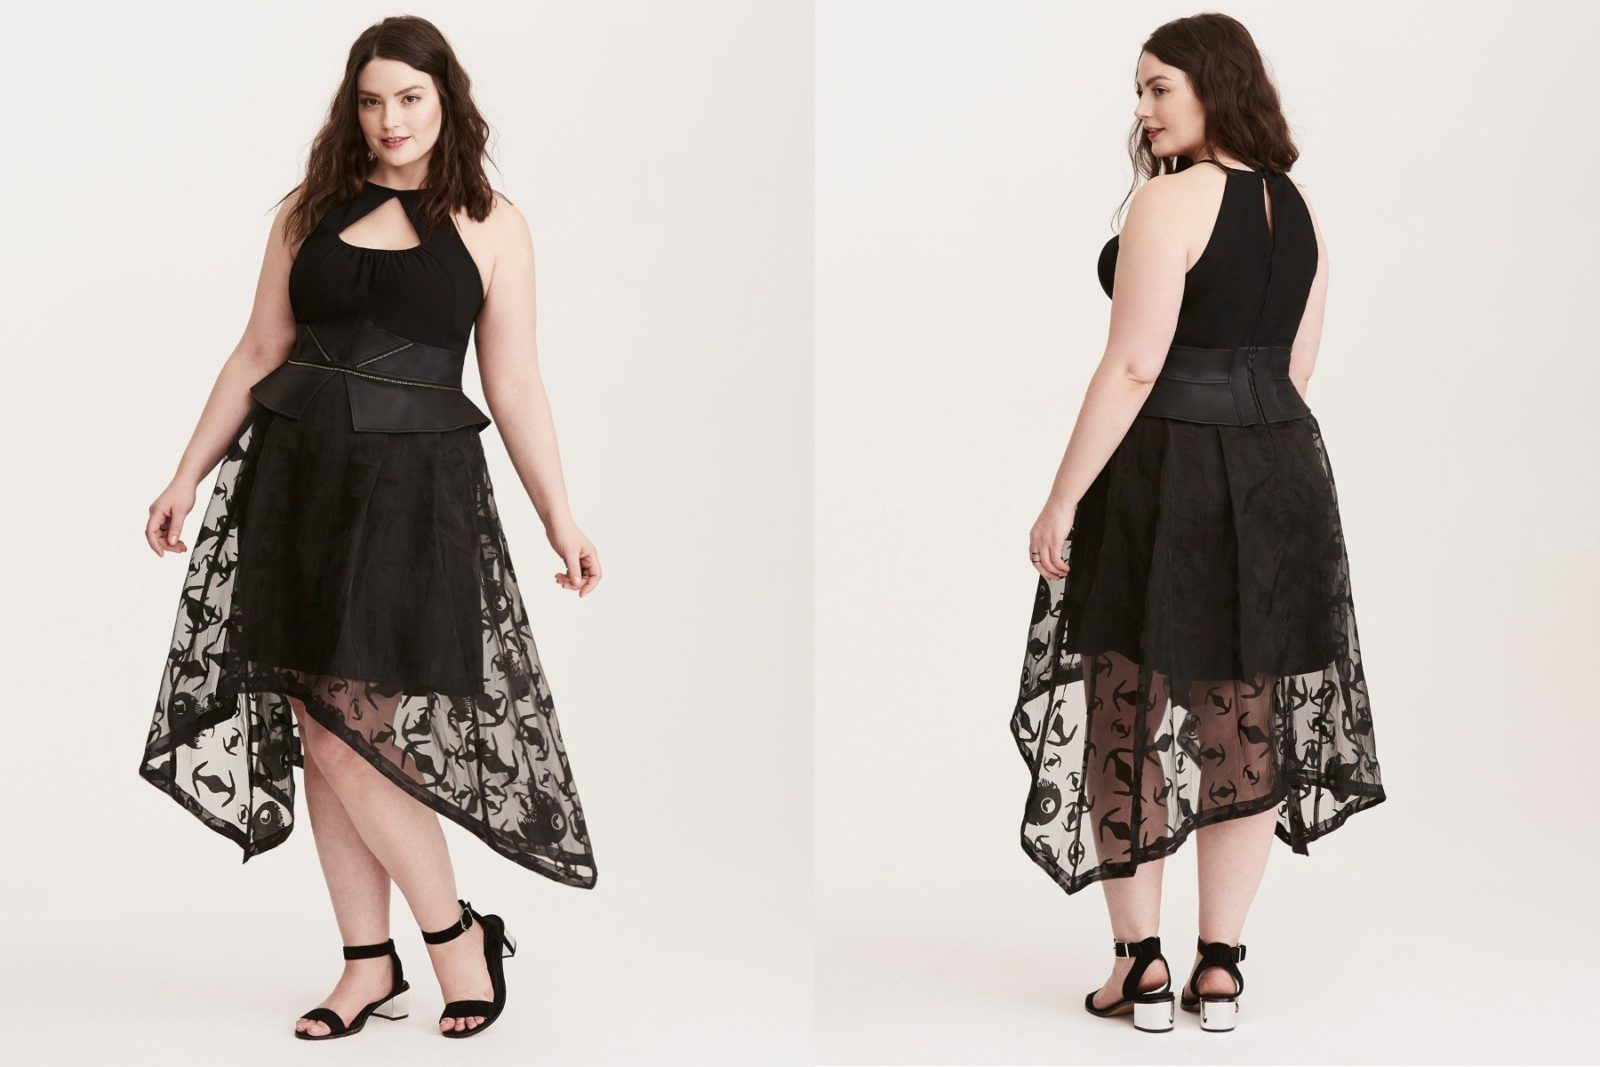 New Darth Vader halter dress at Torrid